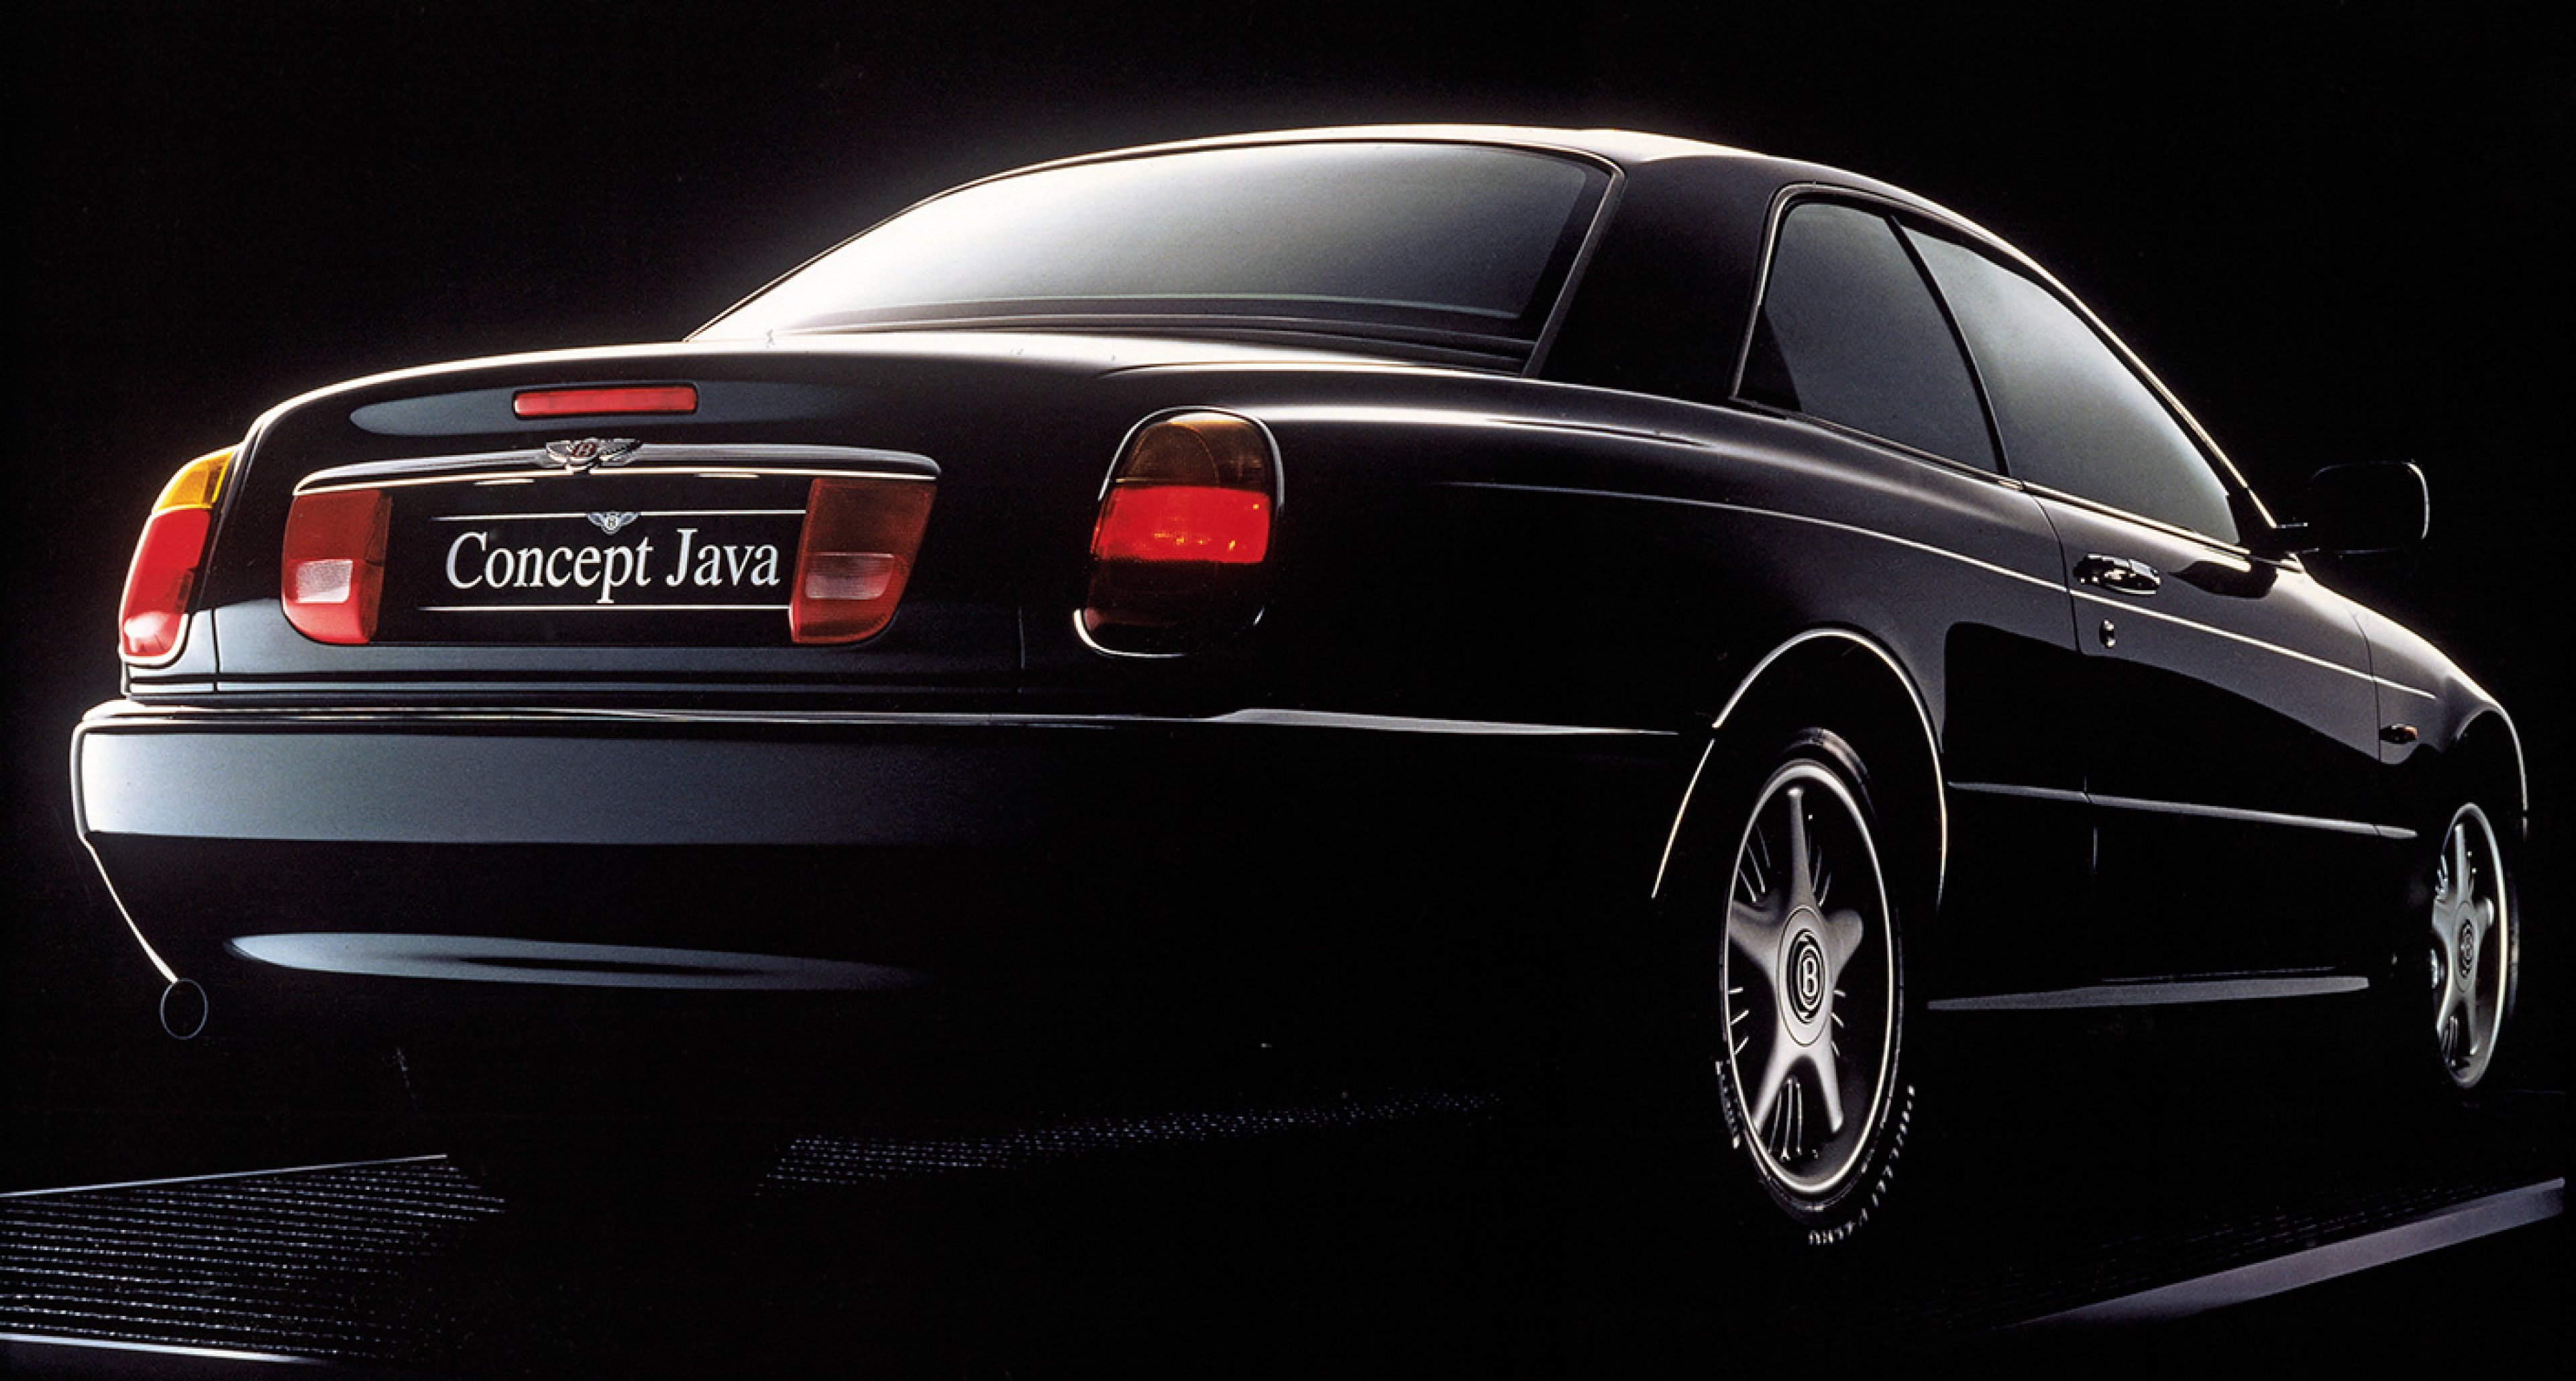 Concept Java coupé of the mid-90s